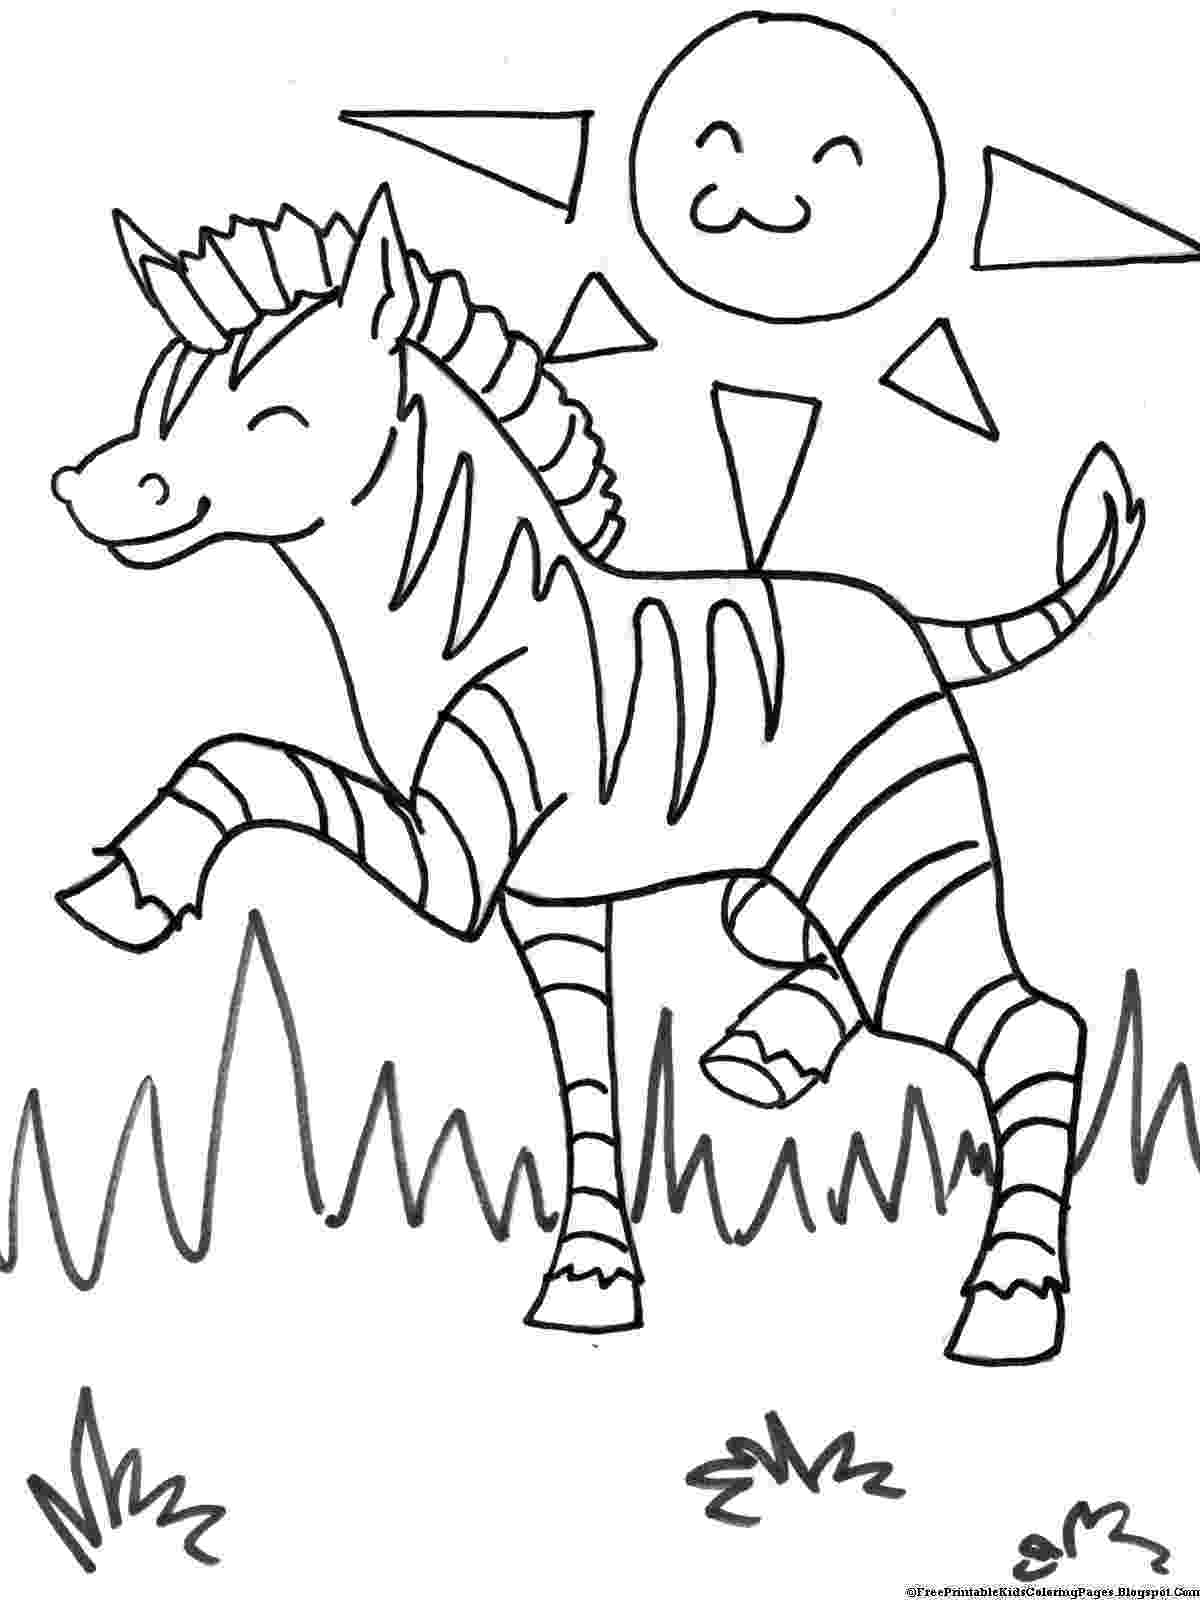 zebra to colour zebra coloring pages free printable kids coloring pages colour to zebra